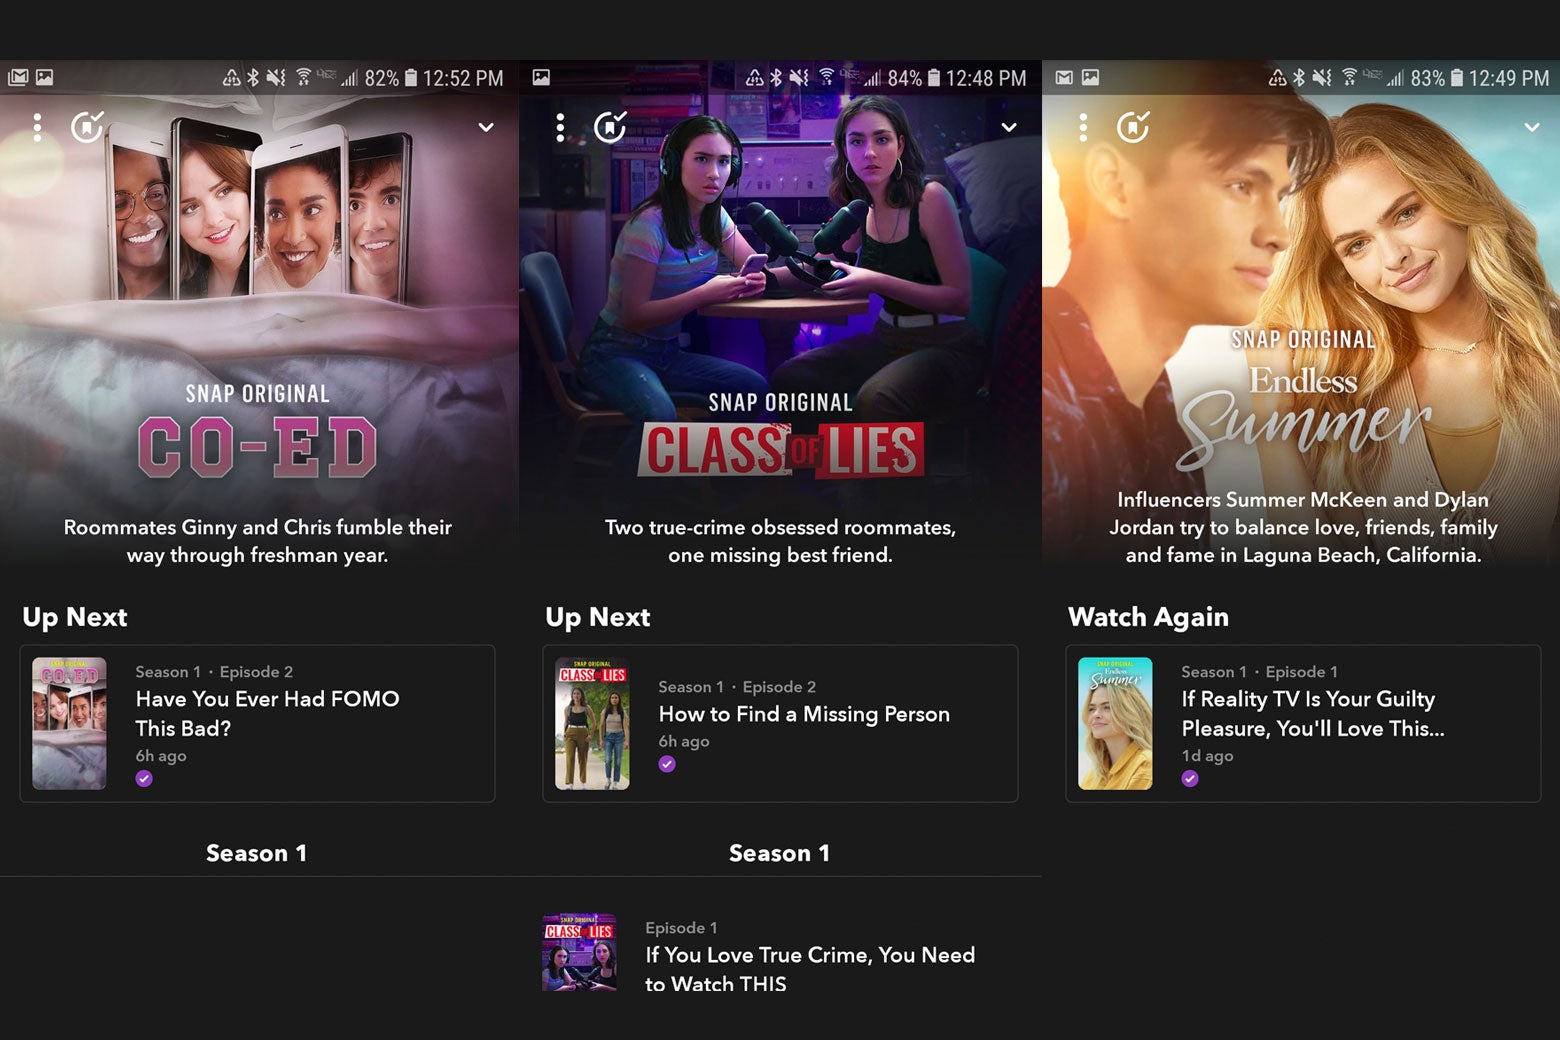 Phone screens displaying promo images for the Snap Originals series Endless Summer, Class of Lies, and Co-Ed.